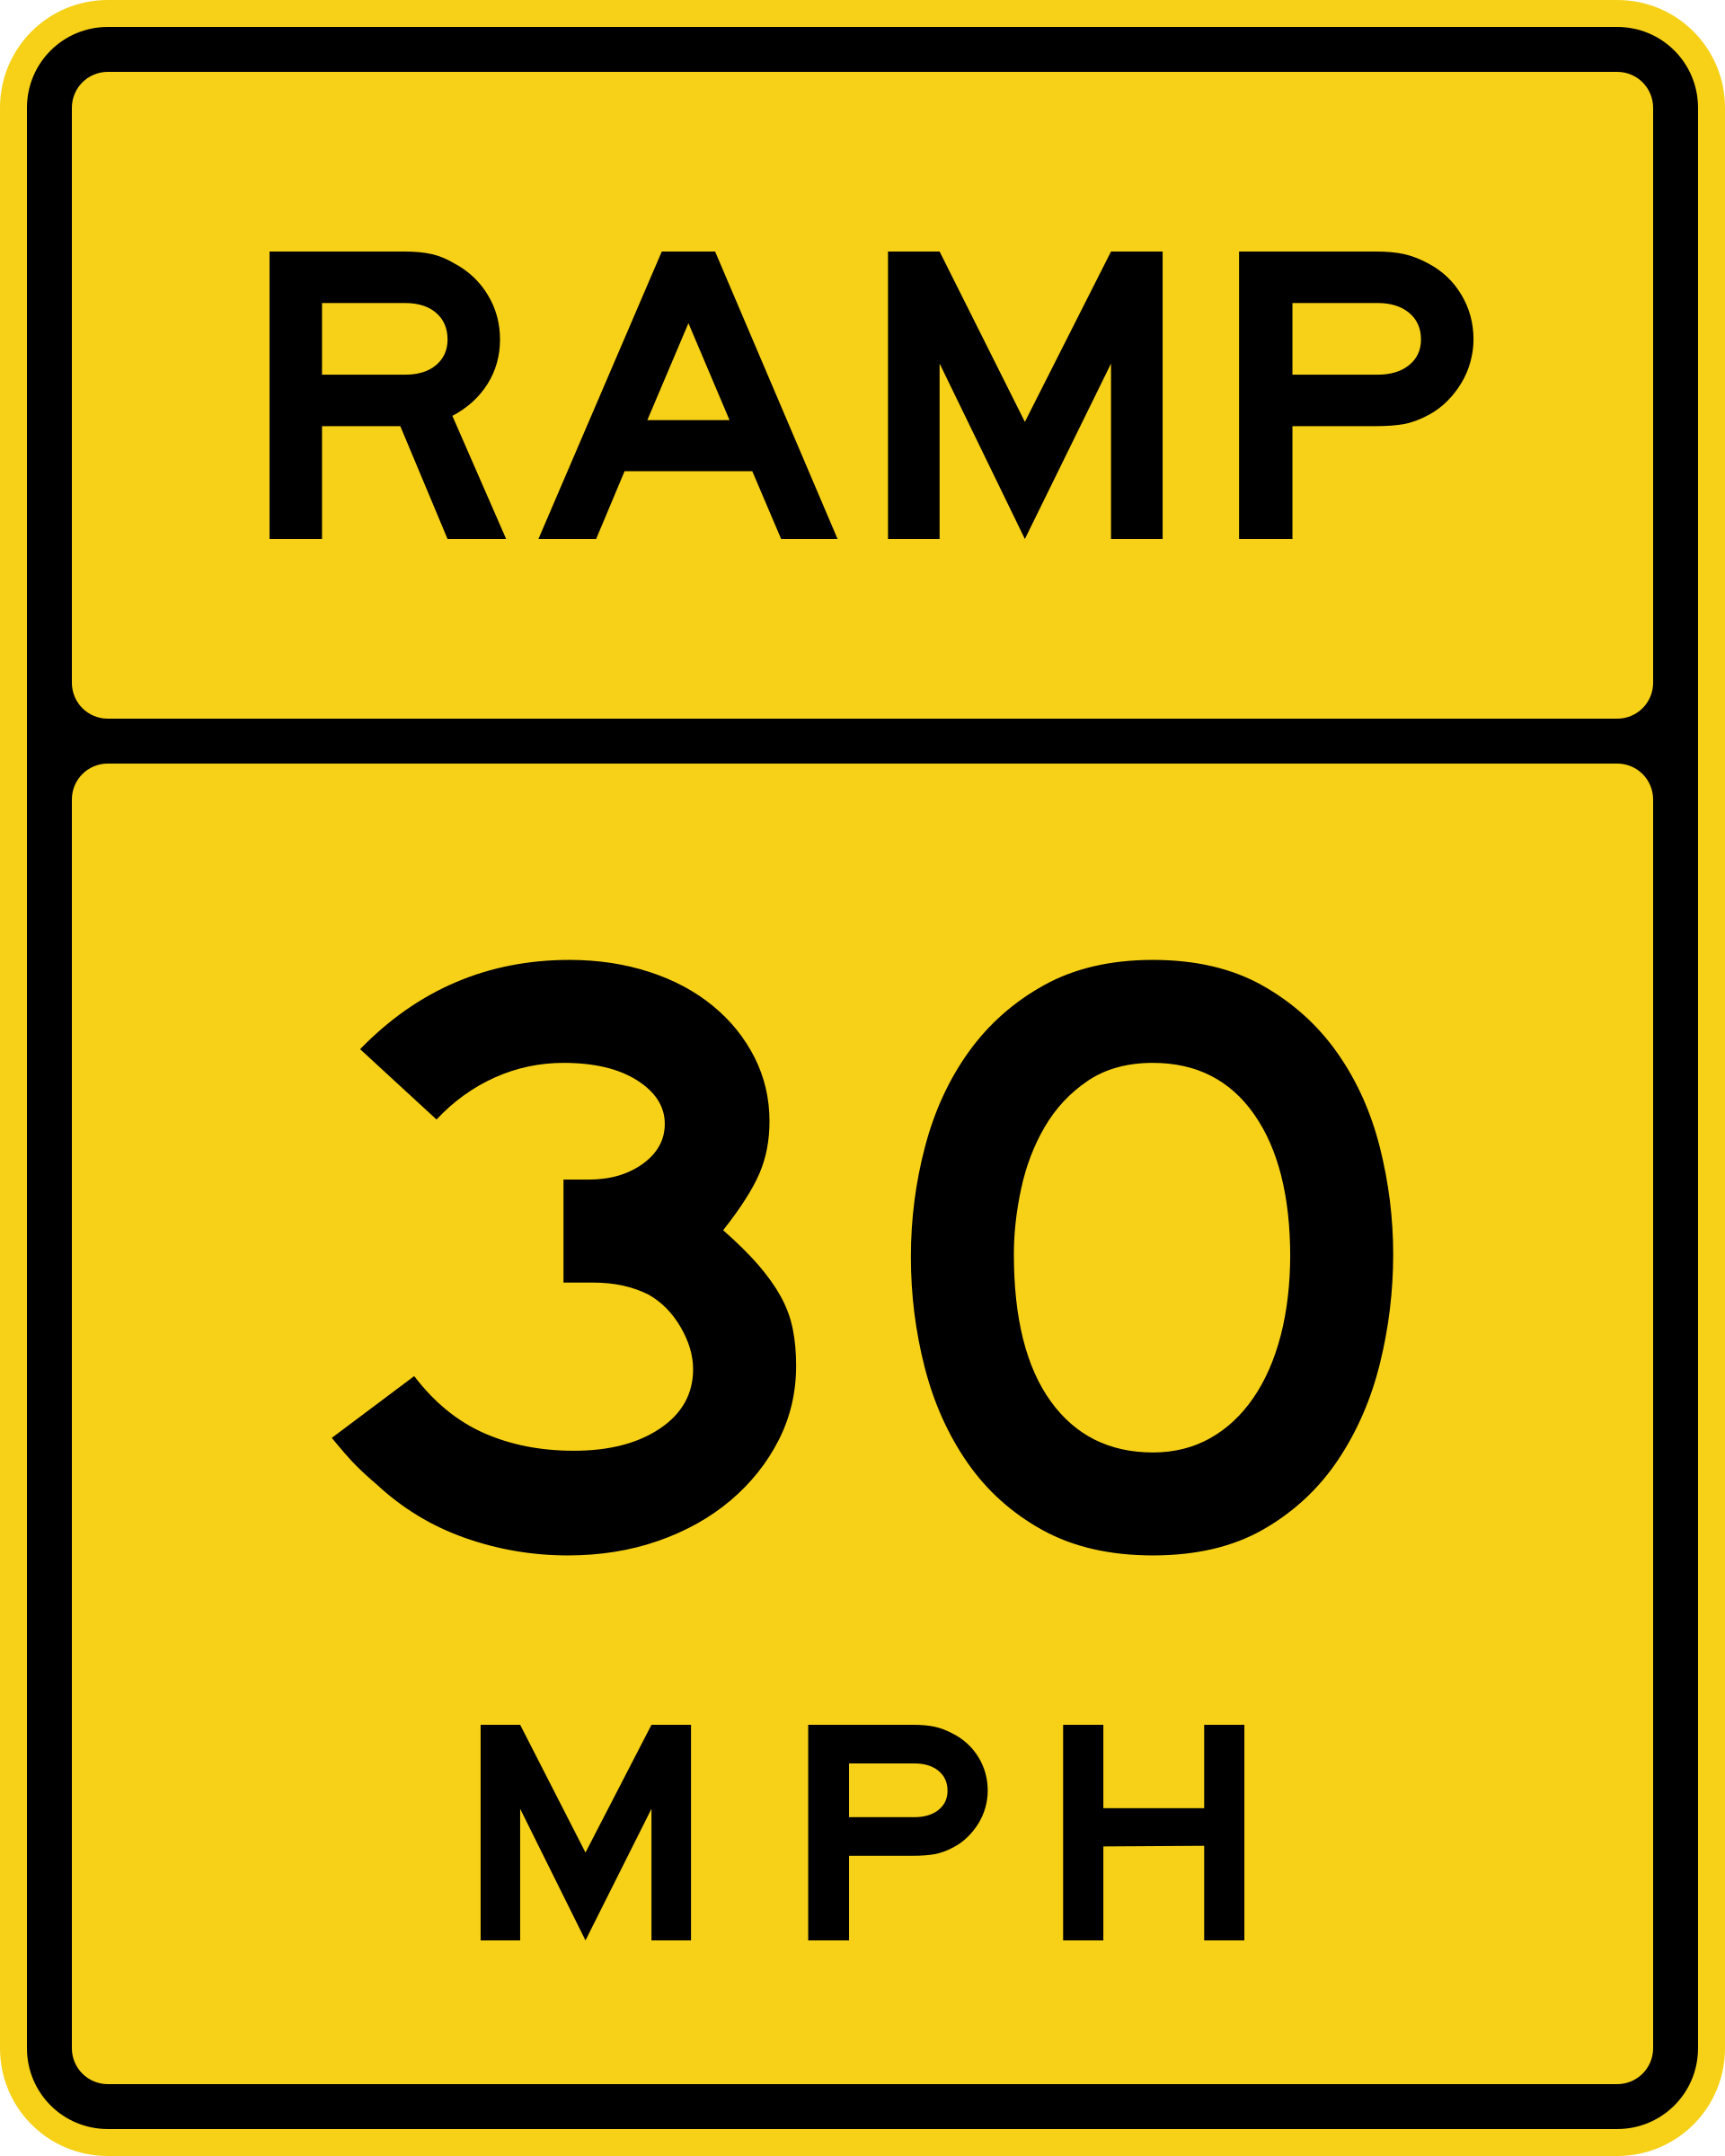 Ramp speed 30 by Rfc1394